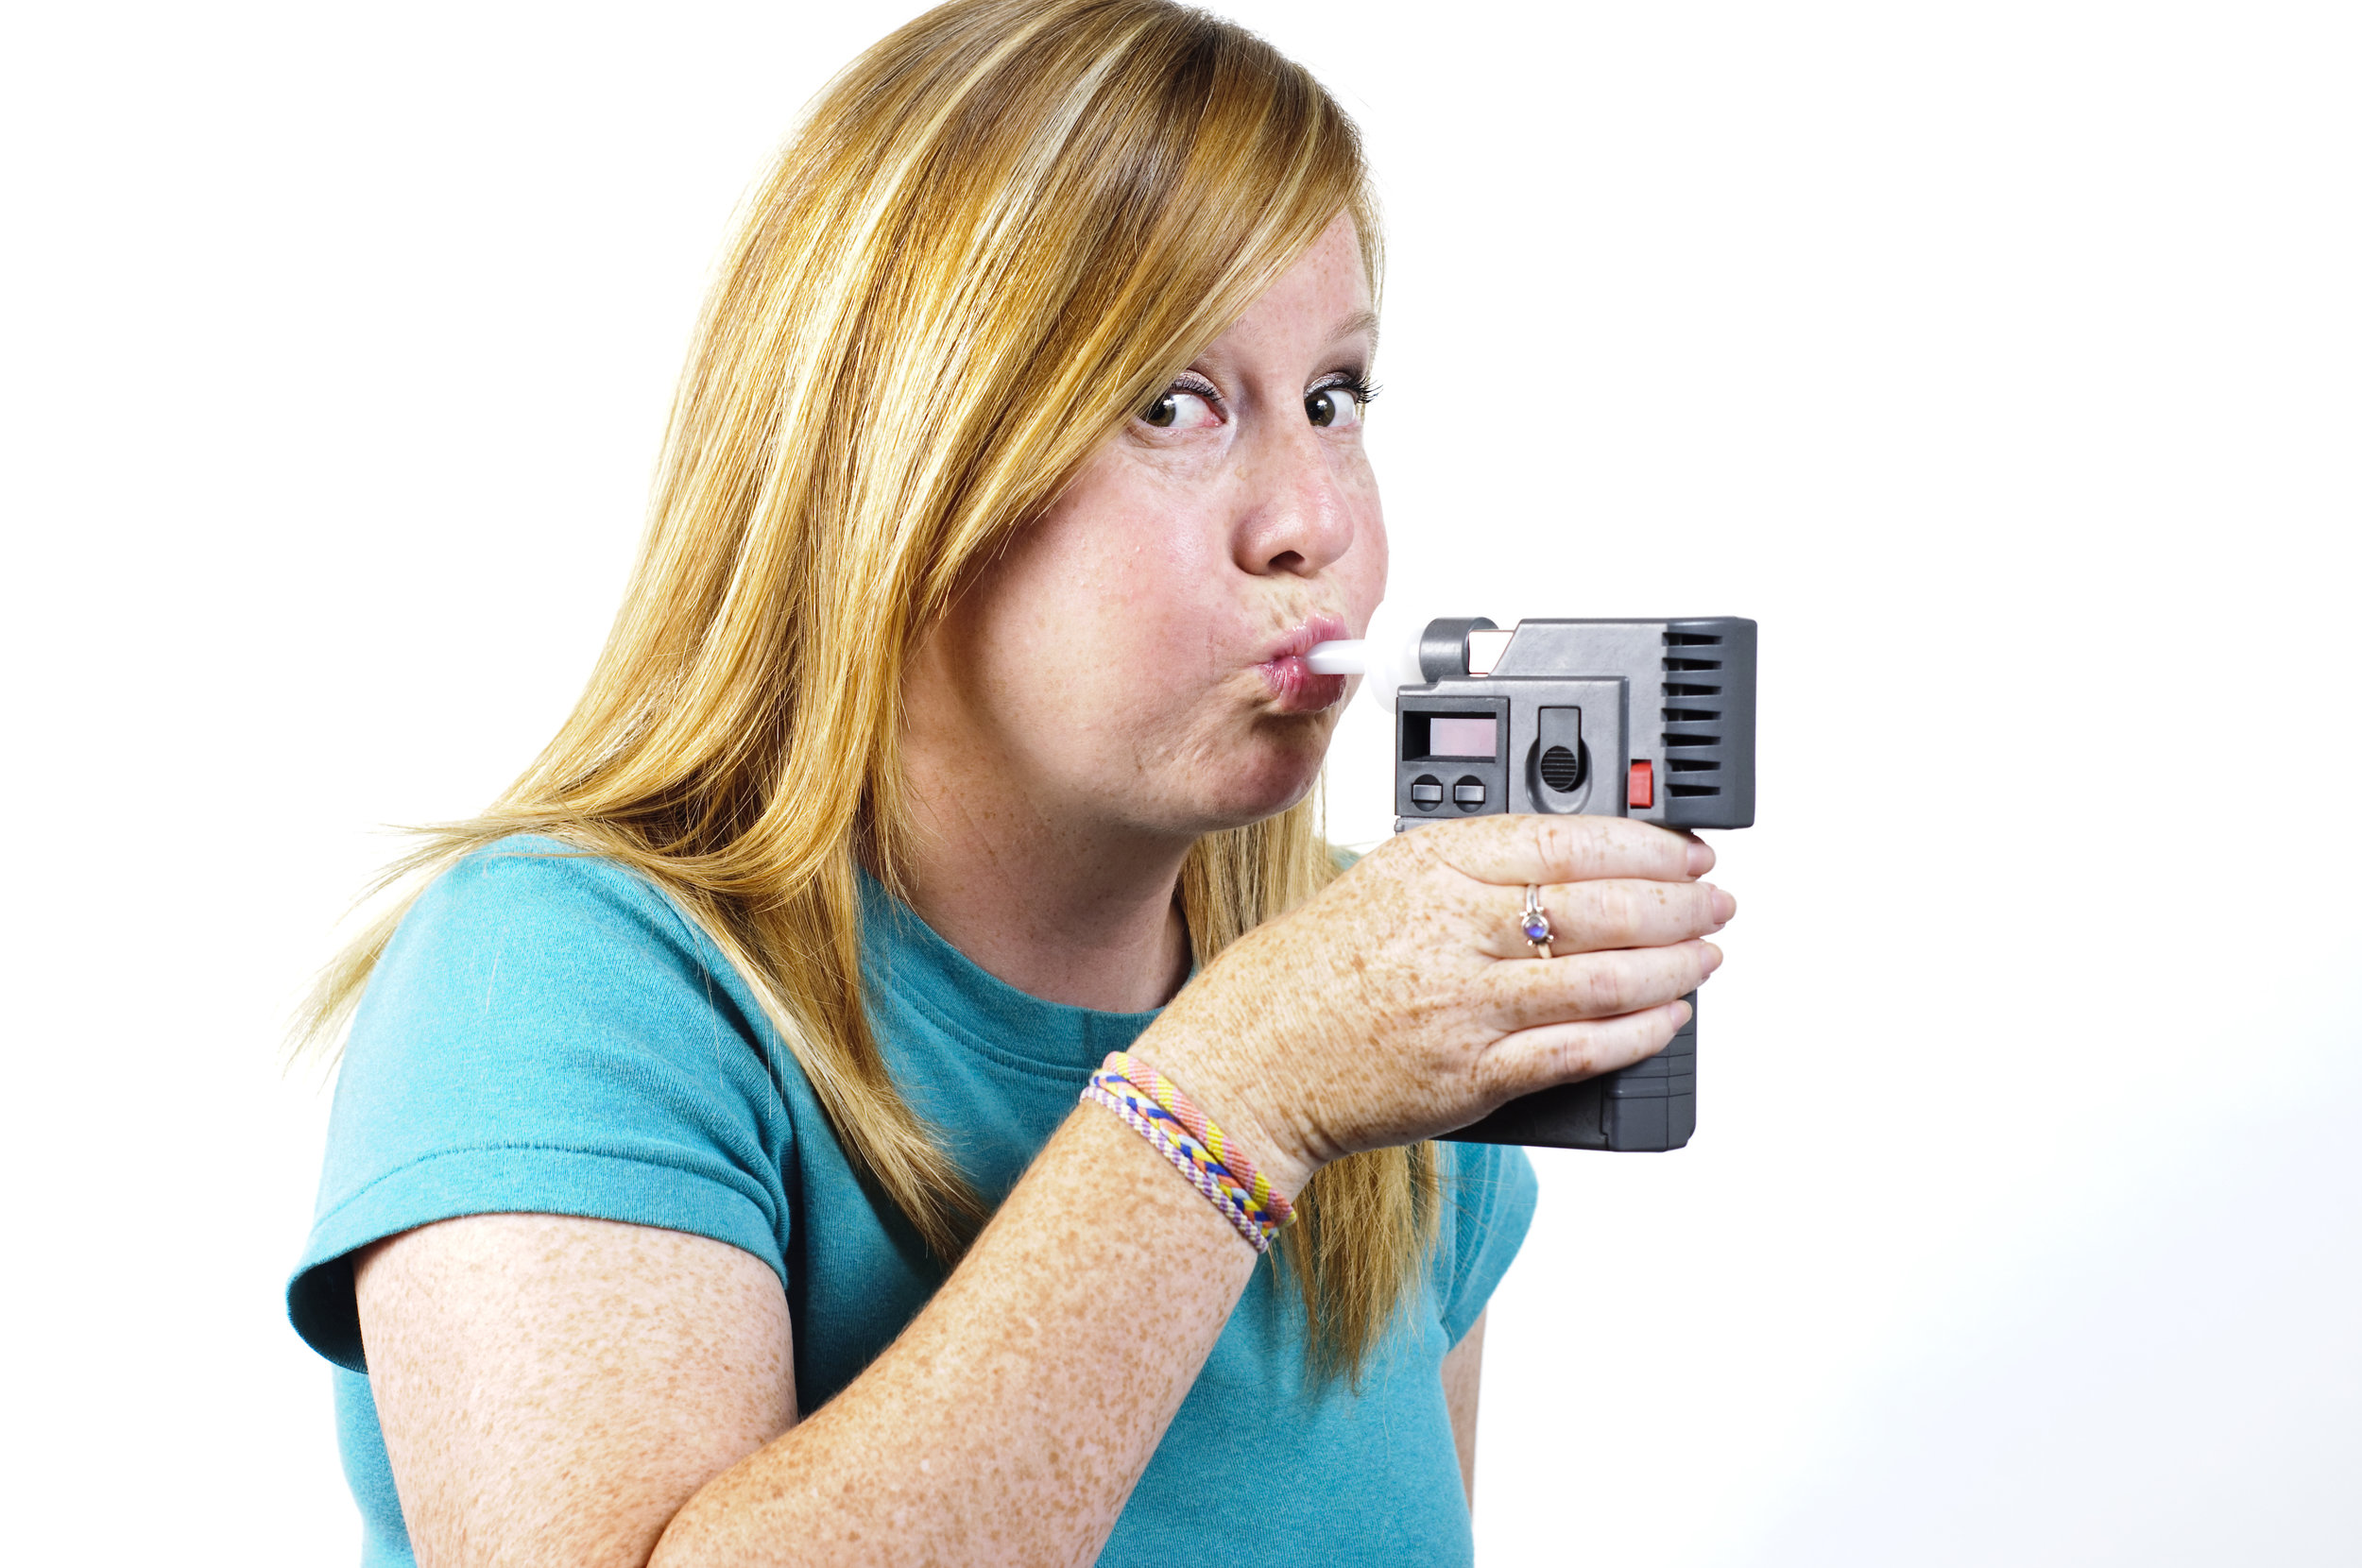 shutterstock_woman blowing into breathalyzer.jpg